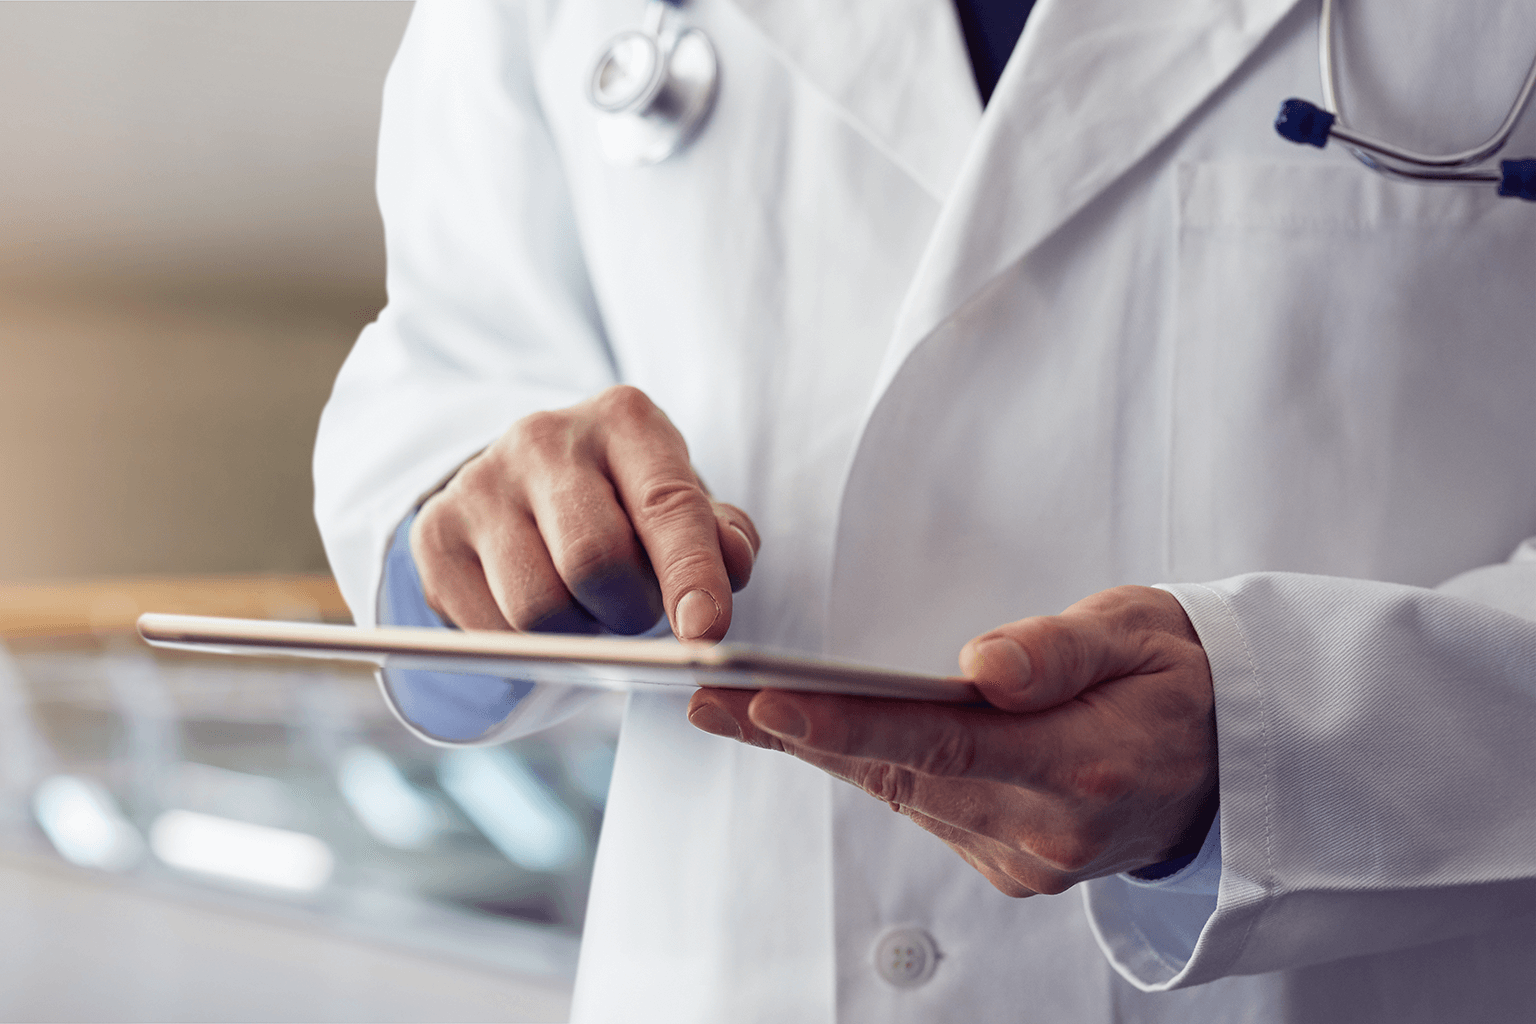 Improving sepsis care: identifying at-risk patients early and accurately